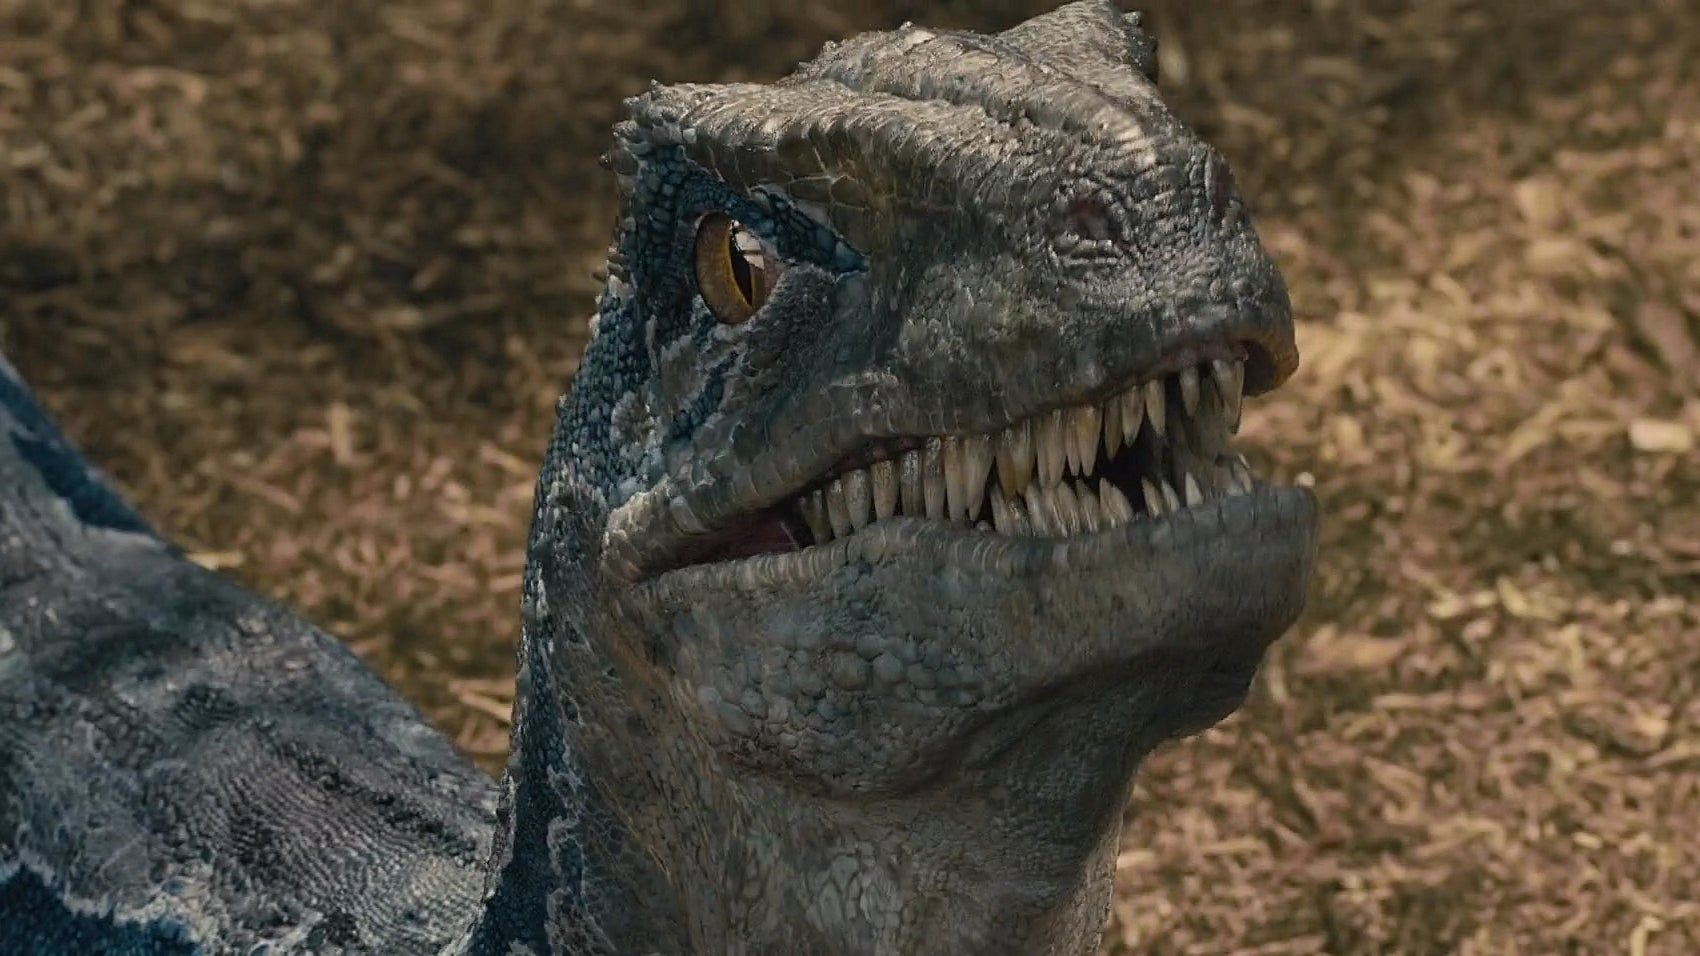 First Brief Look At Jurassic World: Fallen KingdomShowcases The Cutest Deadly Carnivore Ever